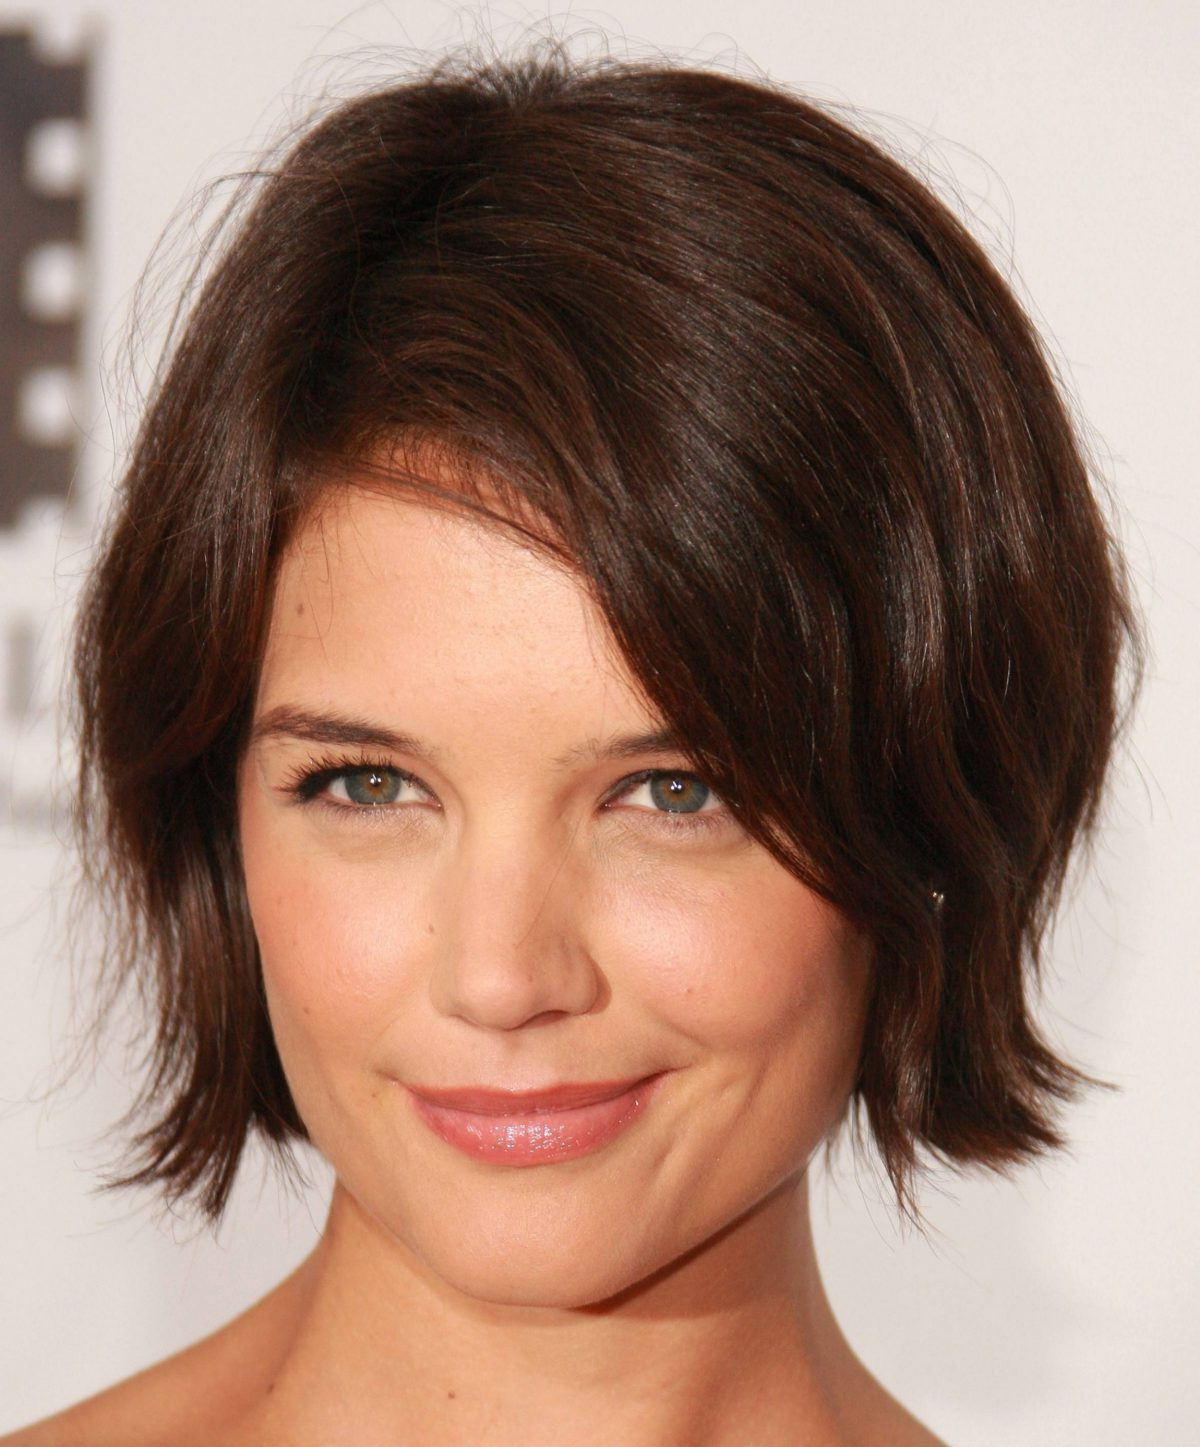 Best Short Hairstyles – Cute Hair Cut Guide For Round Face Shape Intended For Short Hairstyles For Women With Round Faces (View 8 of 25)